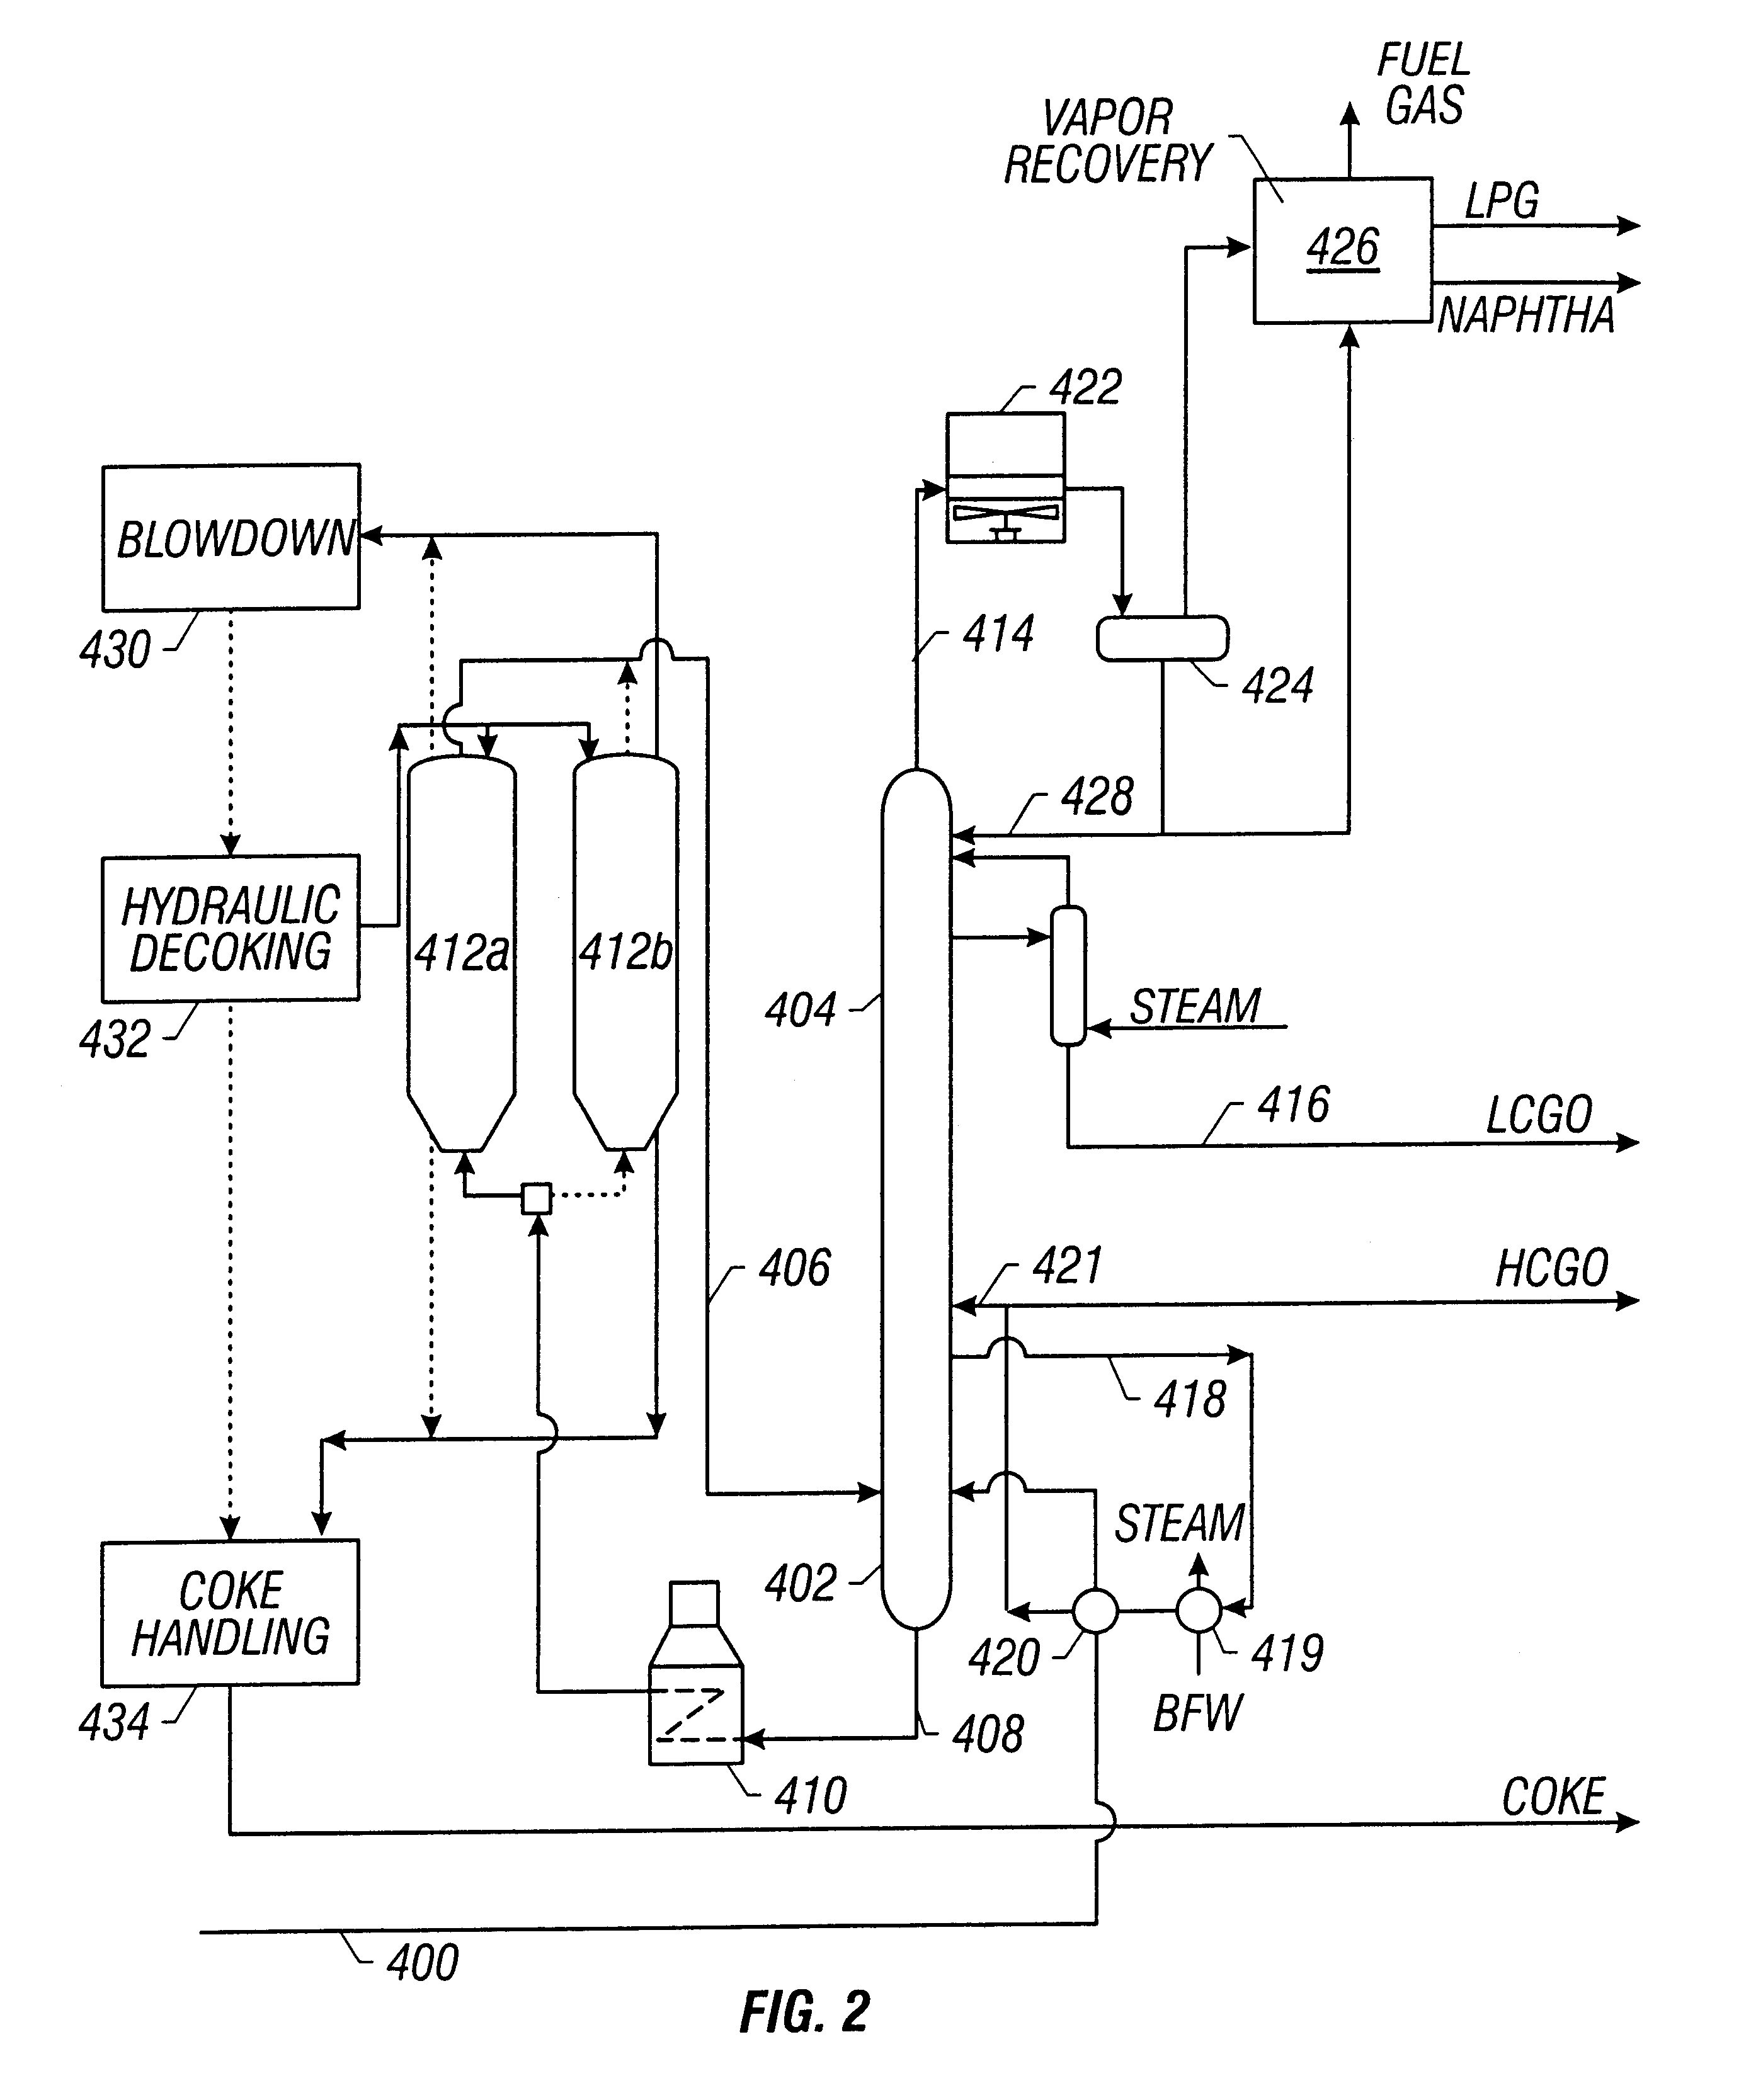 Mac Valve Wiring Diagram moreover US20120298553 moreover US8361310 in addition US8282074 as well US6270656. on delayed coker